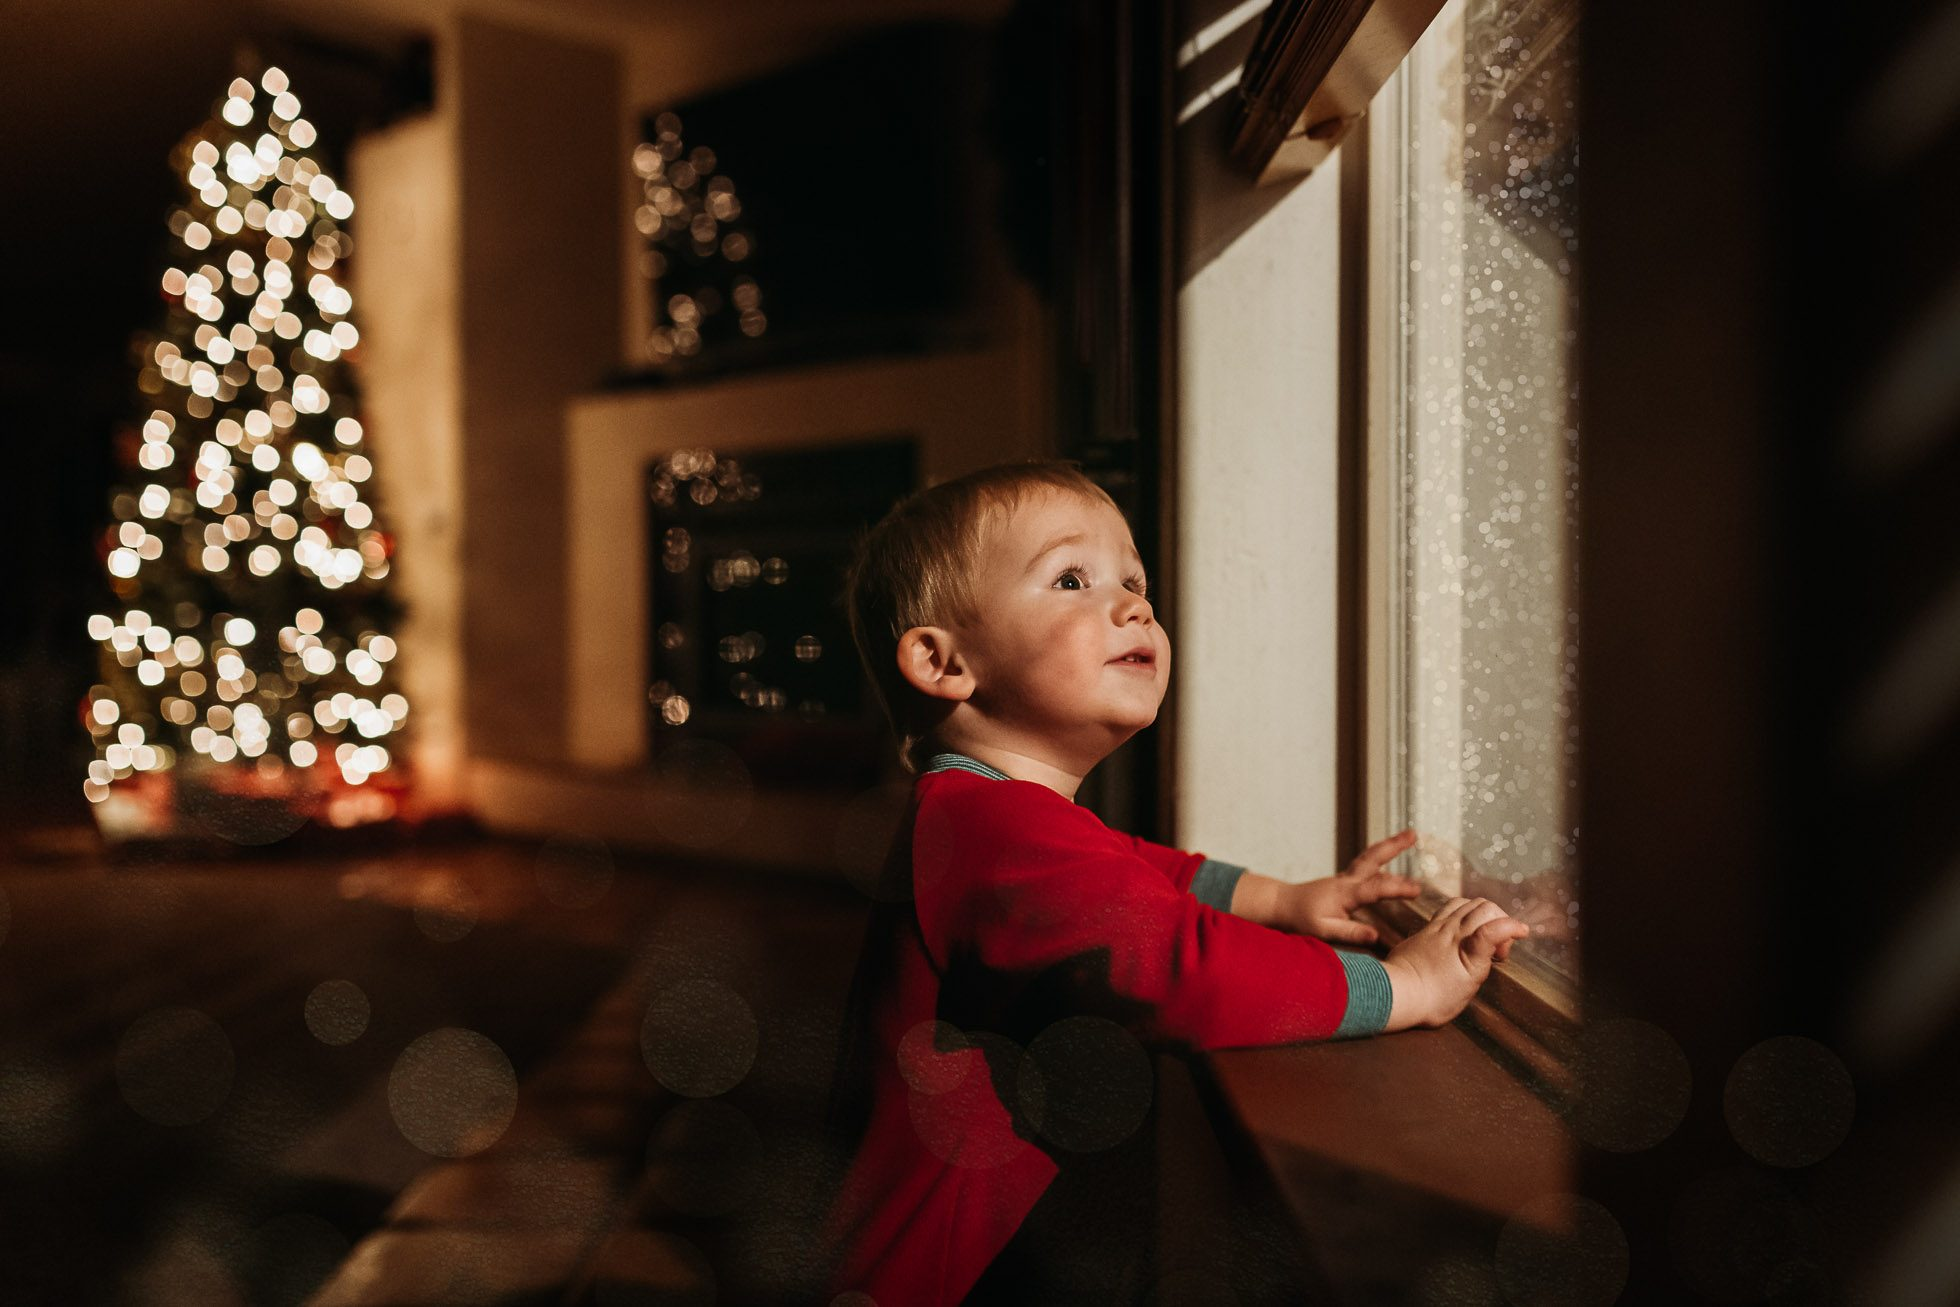 Snow at the Window {30 Days of Christmas Joy} by Jessie Nelson